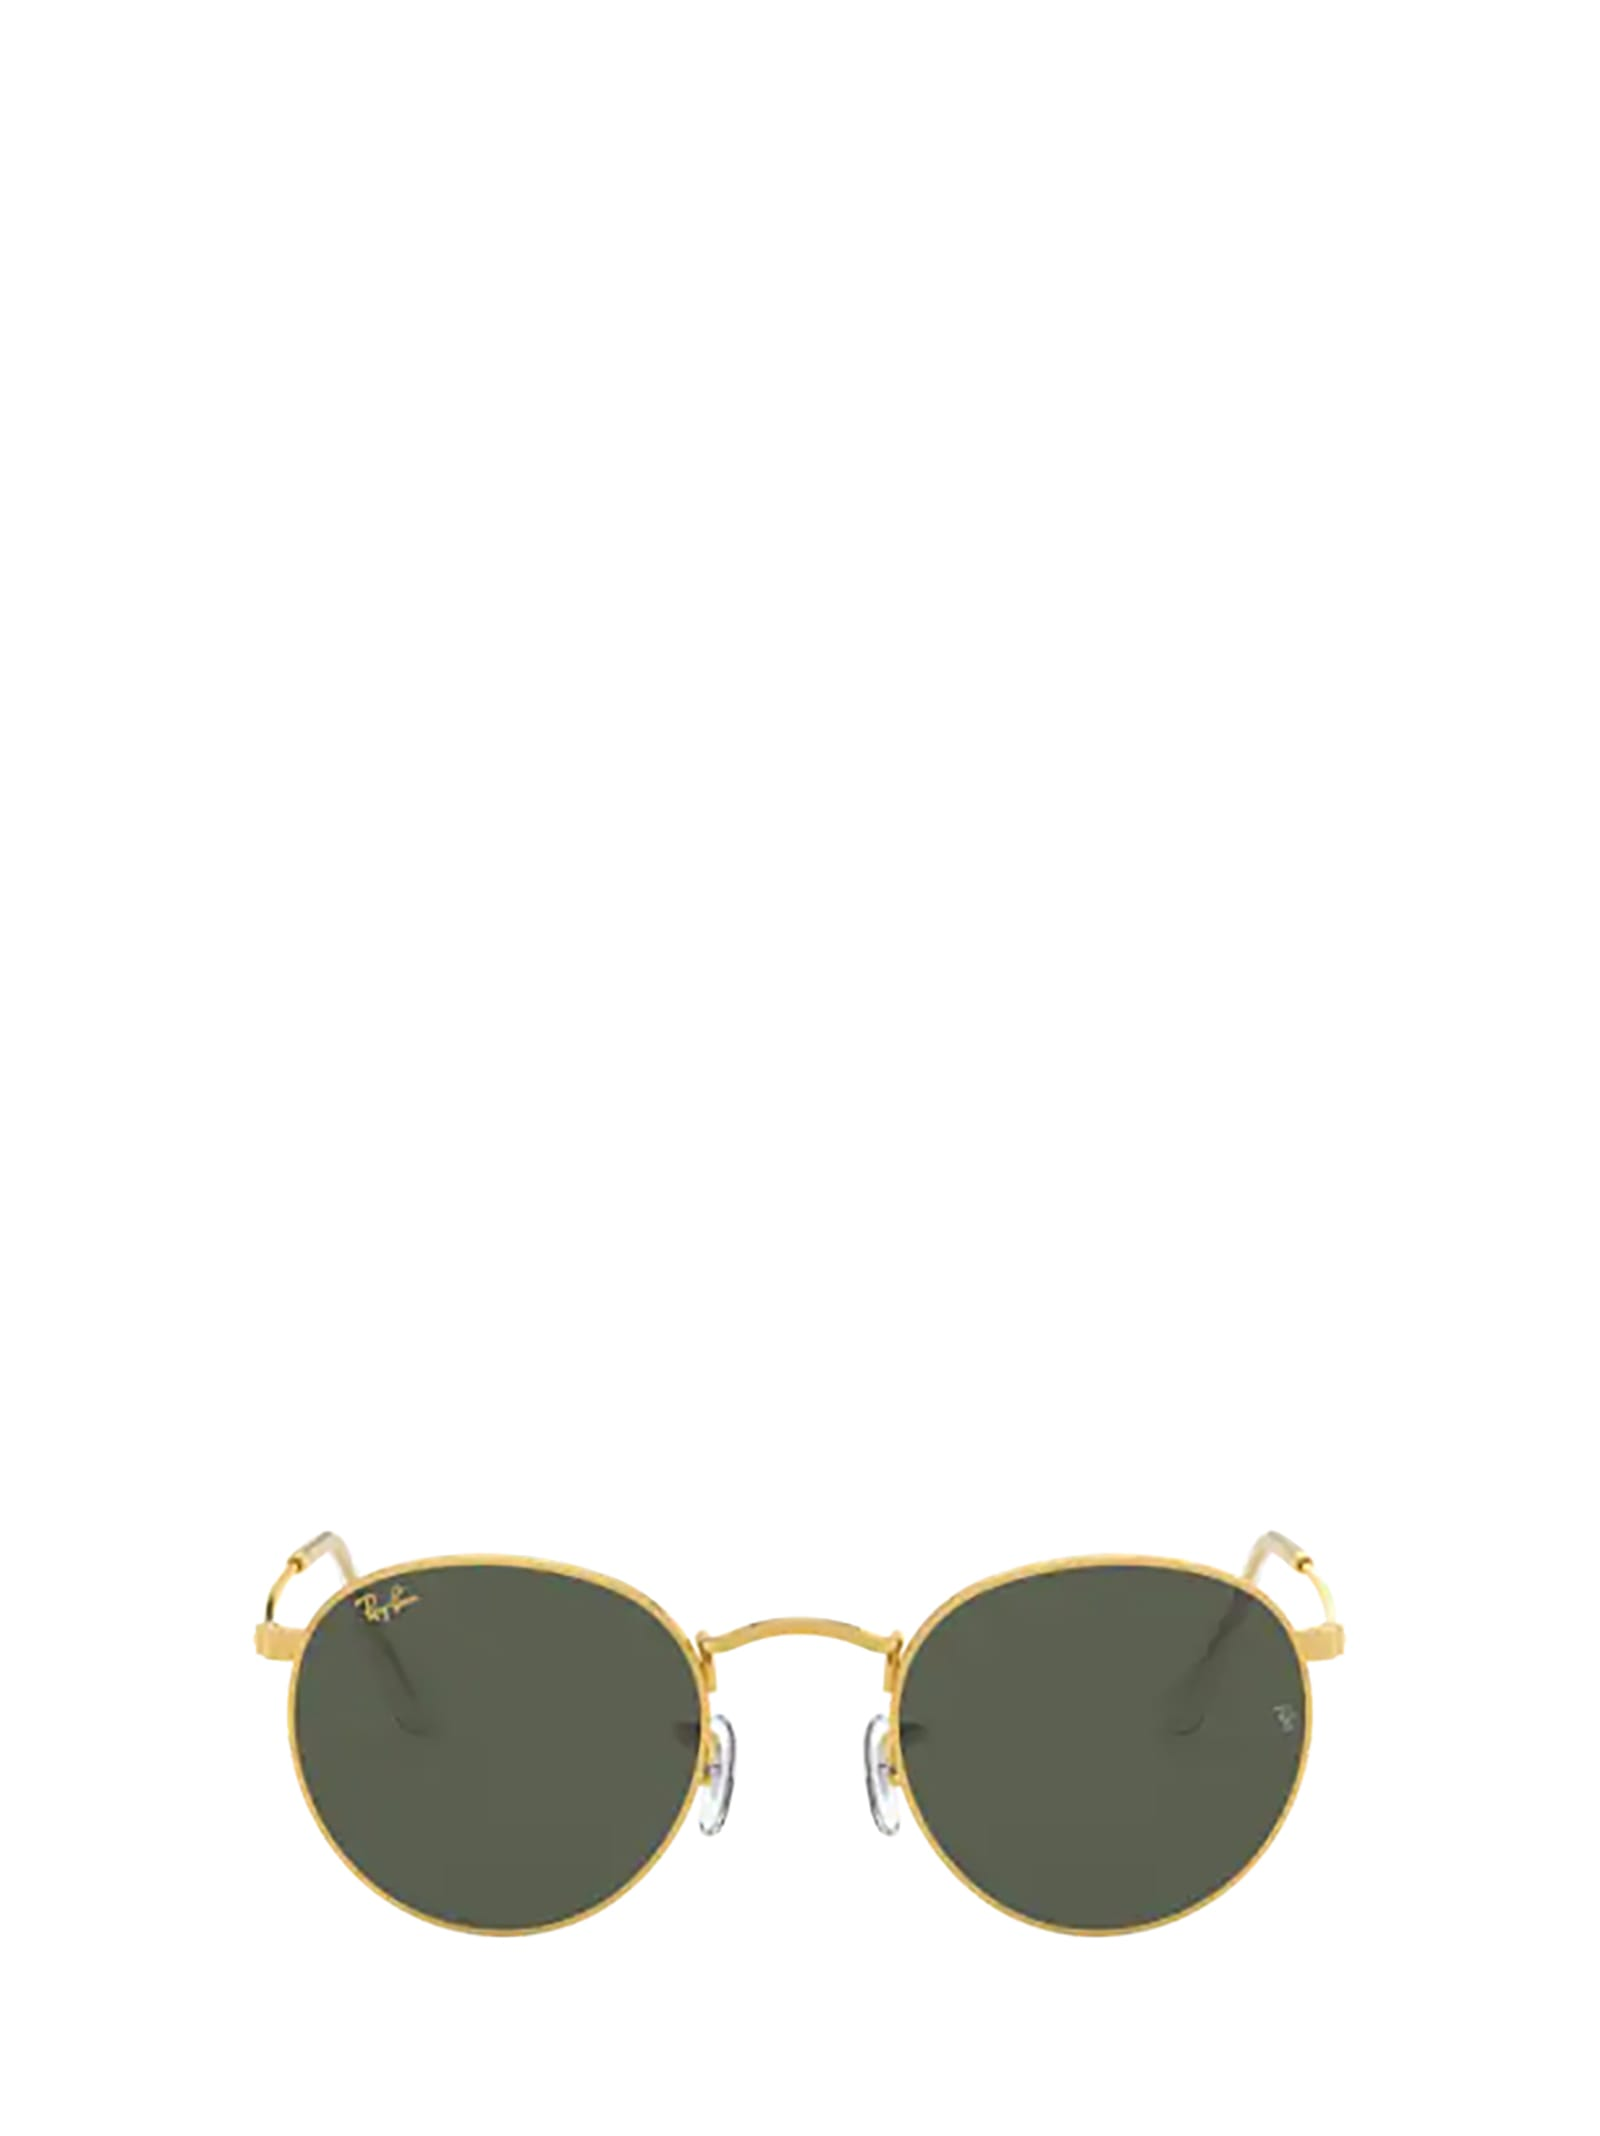 Ray-Ban Ray-ban Rb3447 Legend Gold Sunglasses